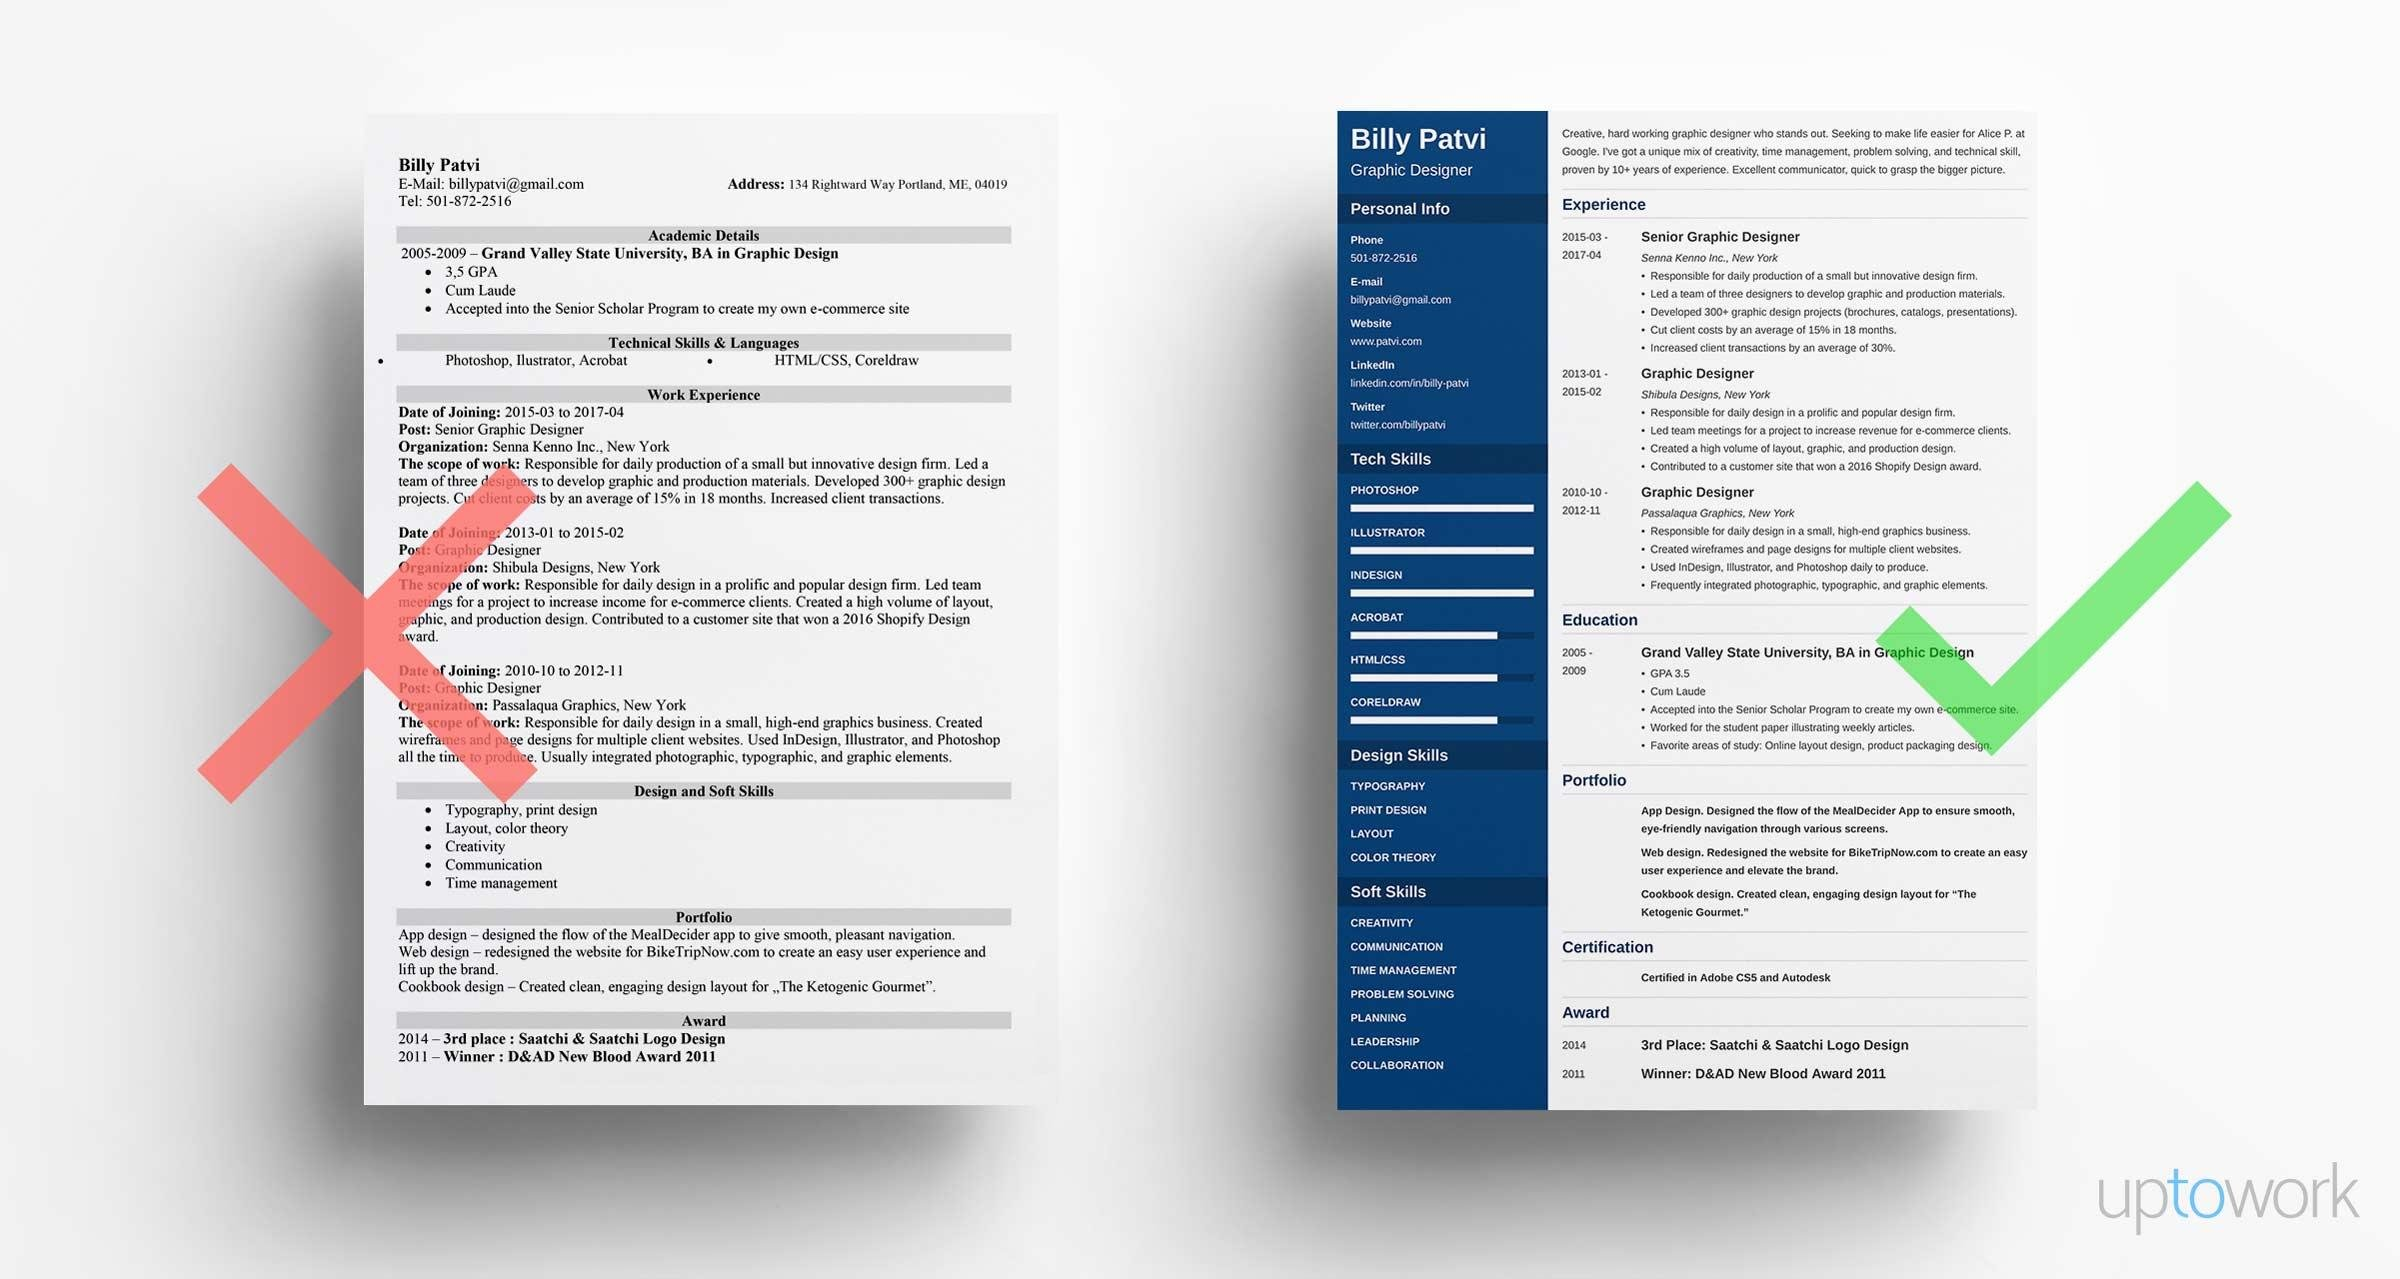 Graphic Design Resume: Sample & Guide [+20 Examples]